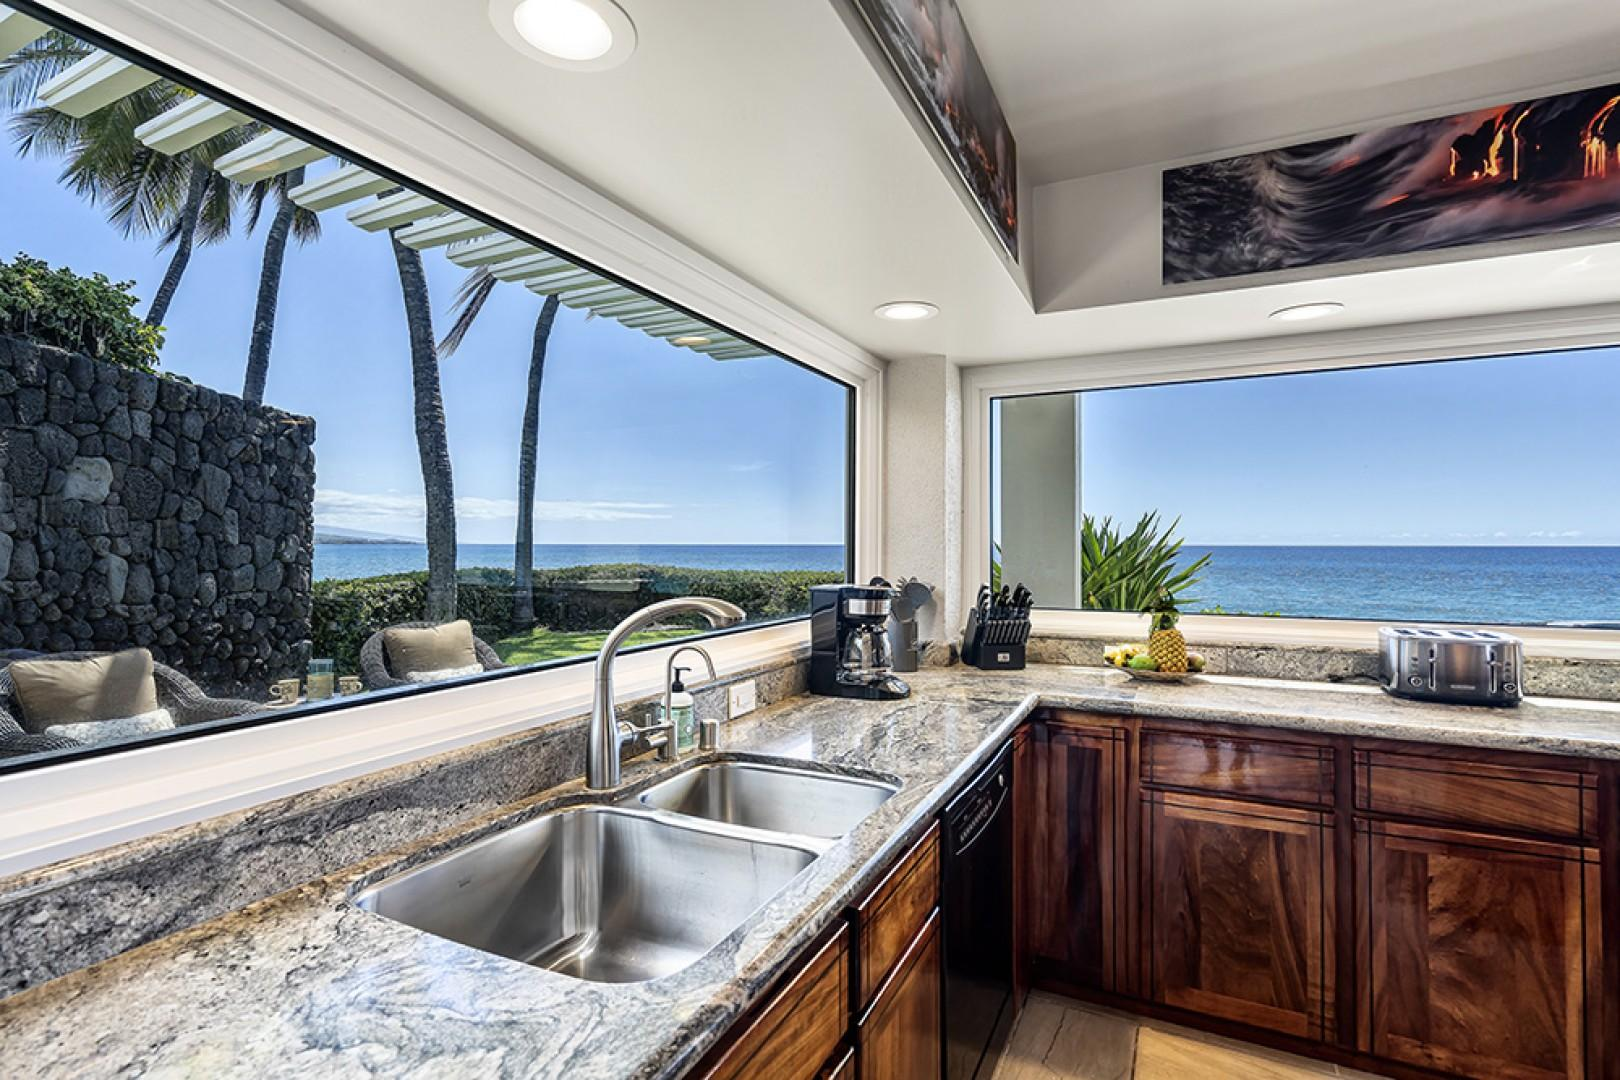 Even washing dishes can be enjoyable with a view like this!